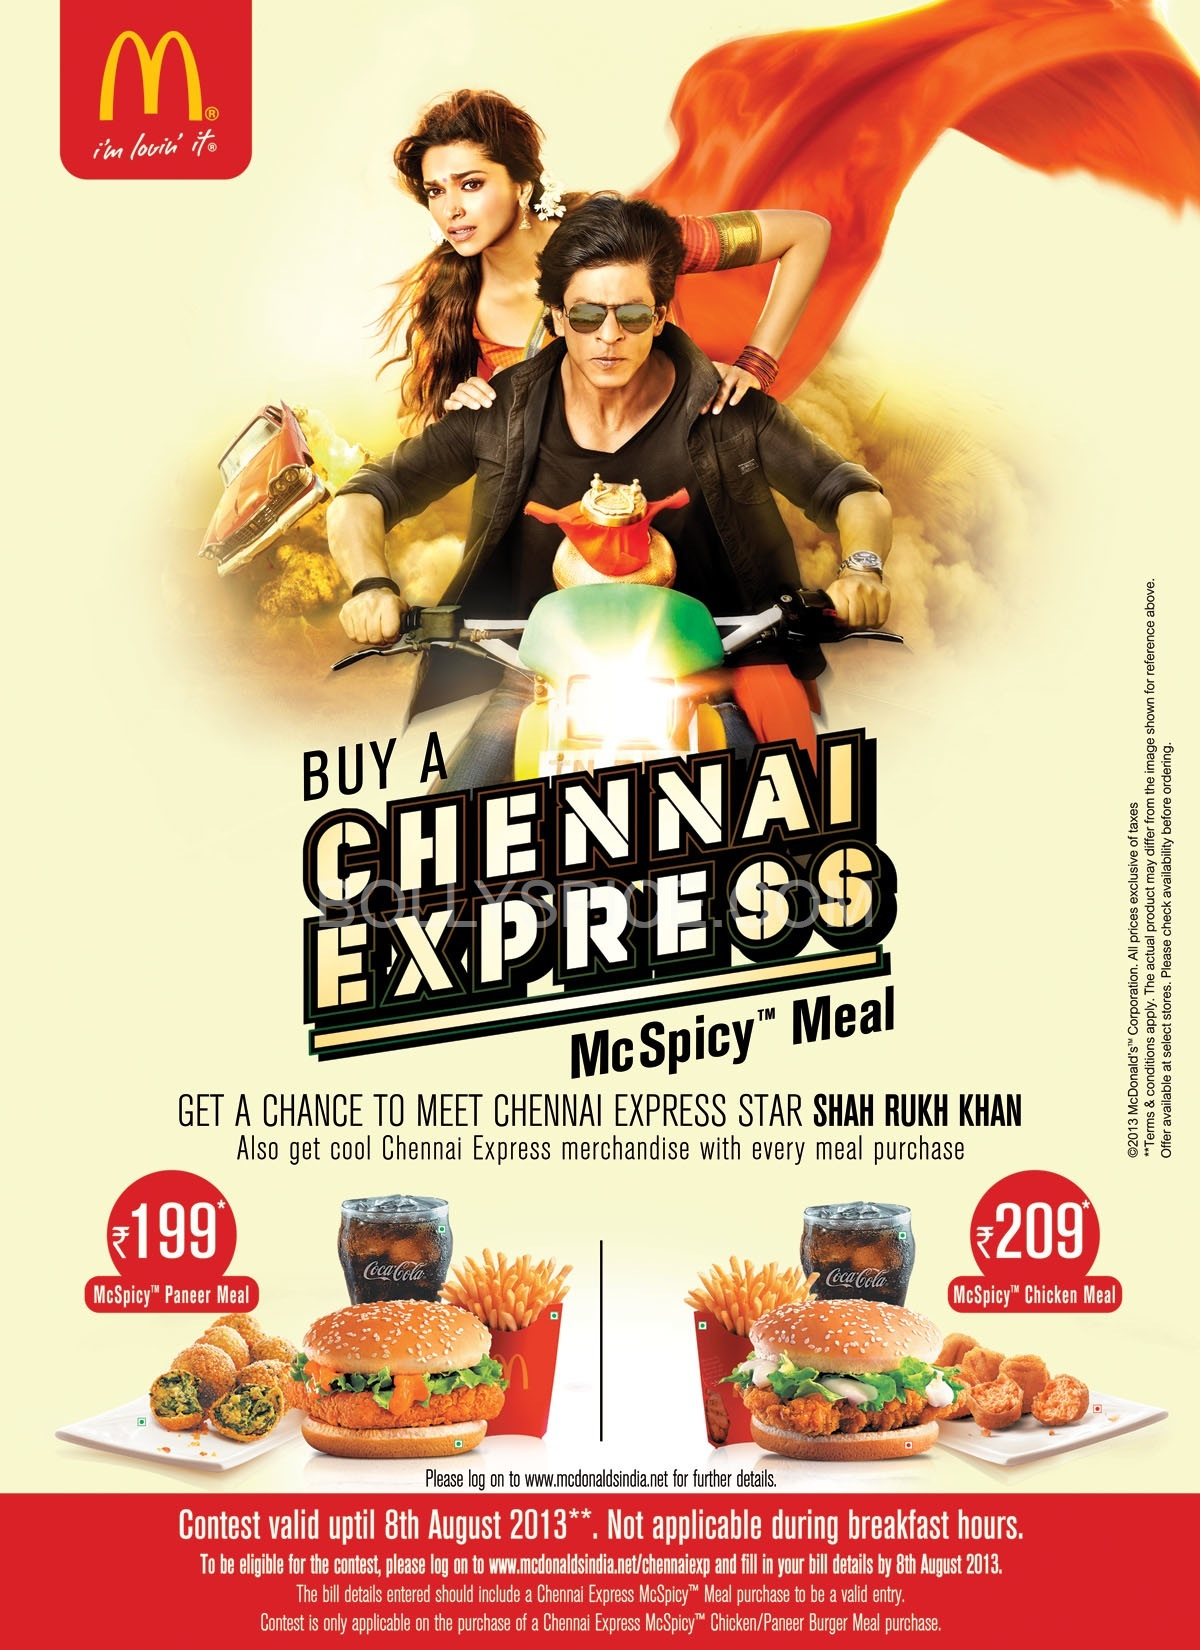 srkchennaiexpressmcdonalds01 Cool promotion! Order a Chennai Express McDonalds McSpicy meal and get a chance to meet Shah Rukh Khan!